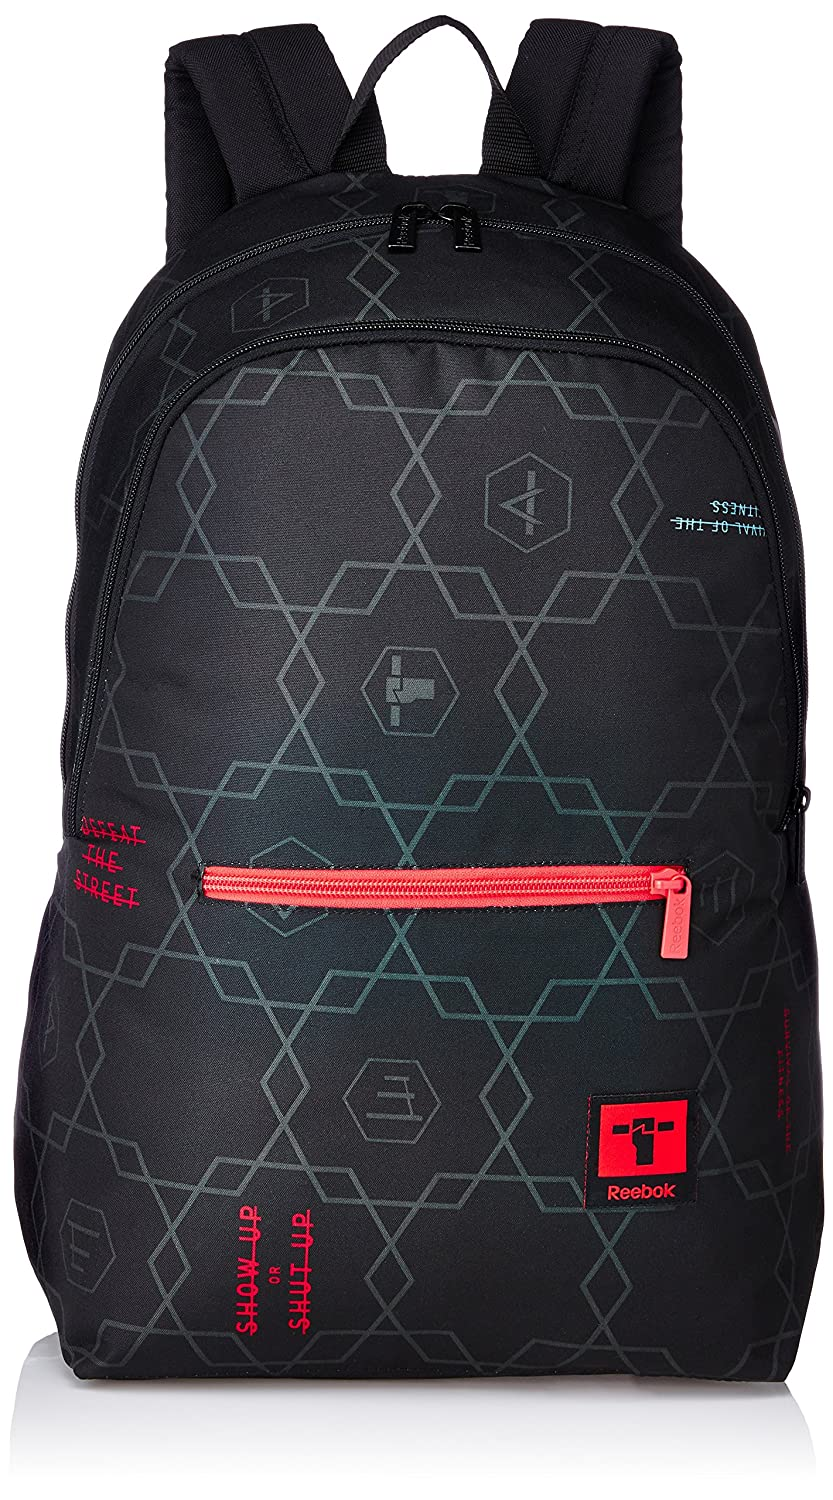 3e299333dc Reebok Marlot Black Casual Backpack (BC4150)  Amazon.in  Bags ...